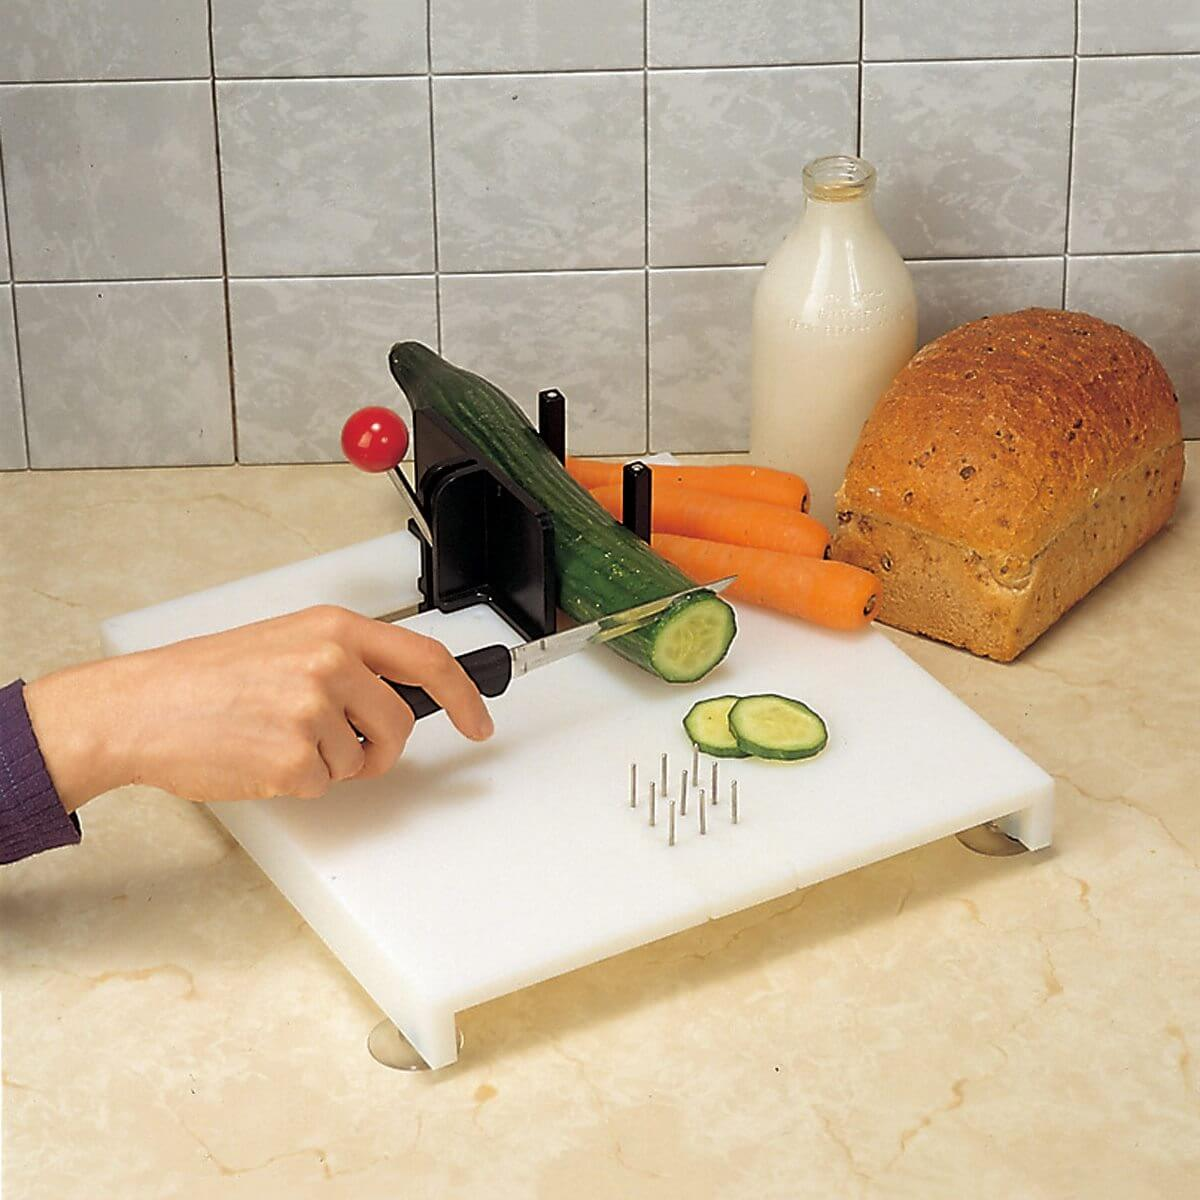 A person's hand holding a knife and cutting vegetables on the Swedish Fix It Food Preparation Board